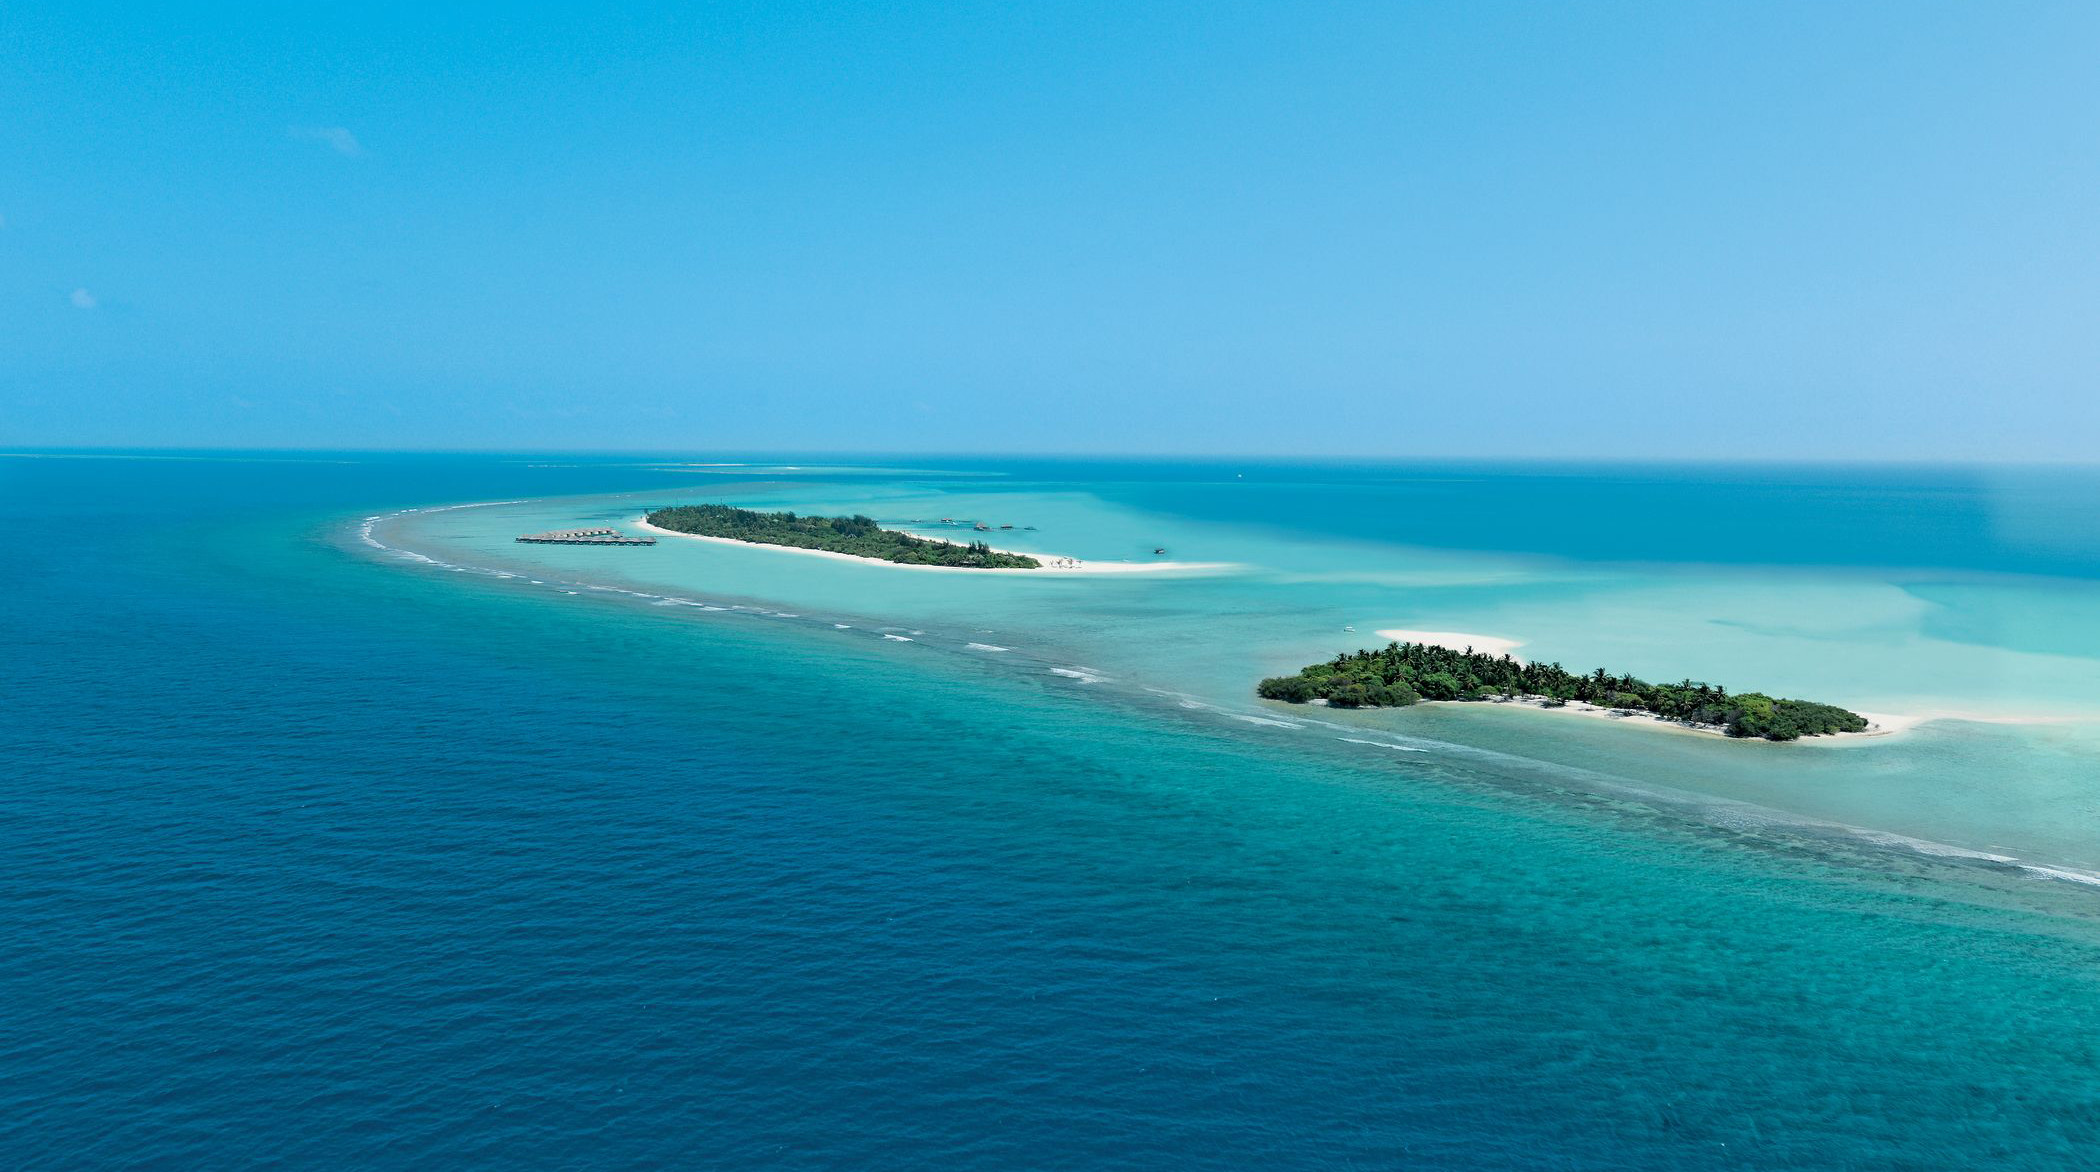 news-main-six-senses-to-add-second-branded-property-in-the-maldives-kanuhura-on-the-private-island-hideaway-of-lhaviyani-atoll.1631705305.jpg